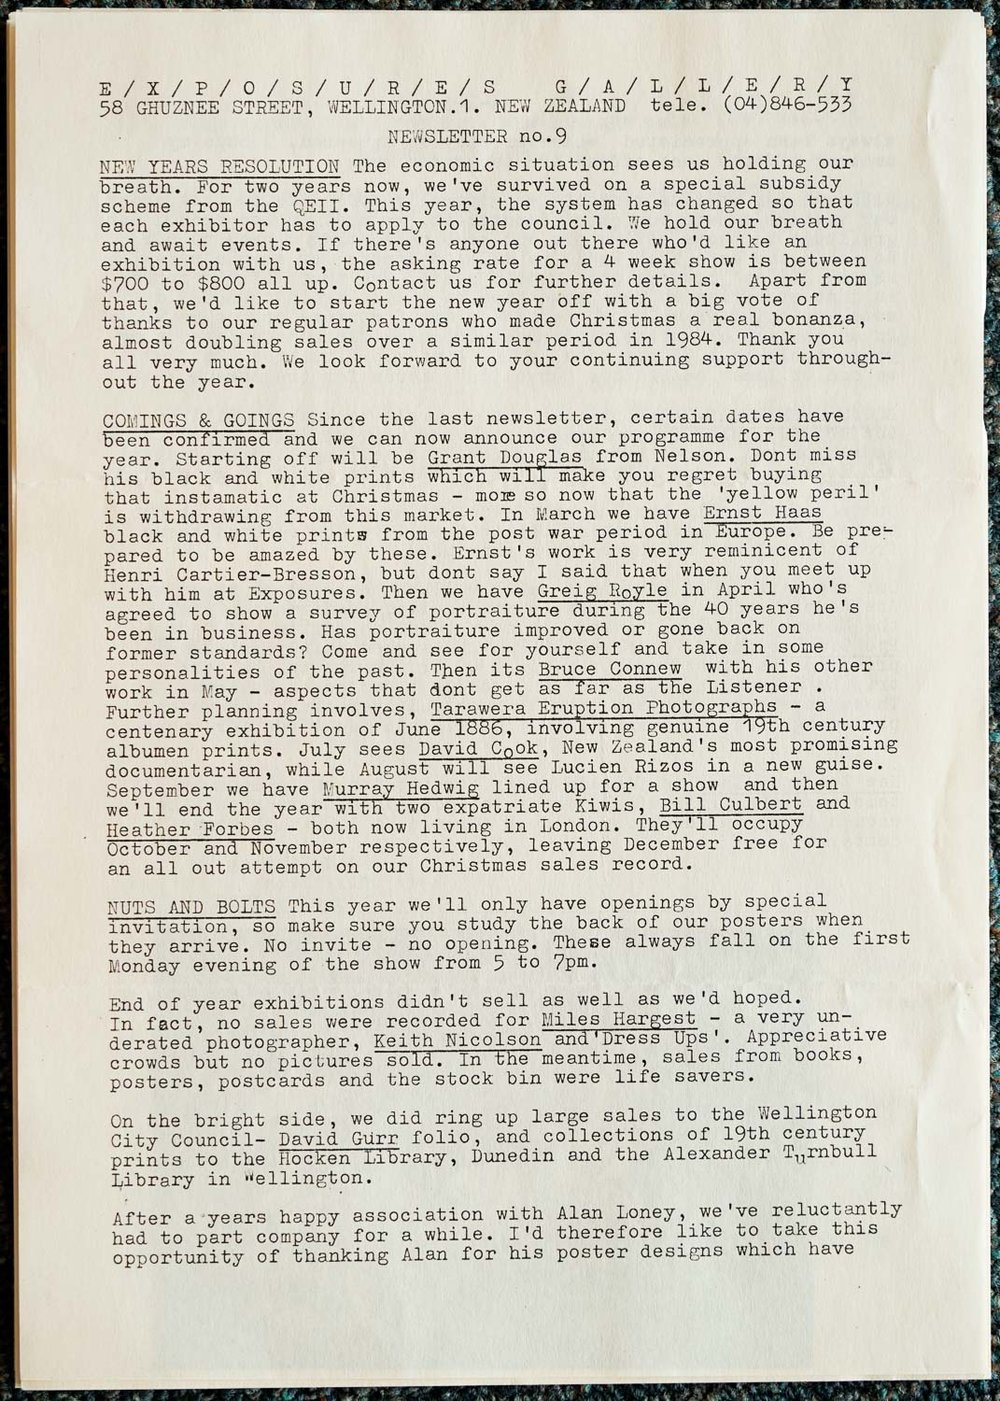 Exposures Gallery Newsletter No.9, February 1986